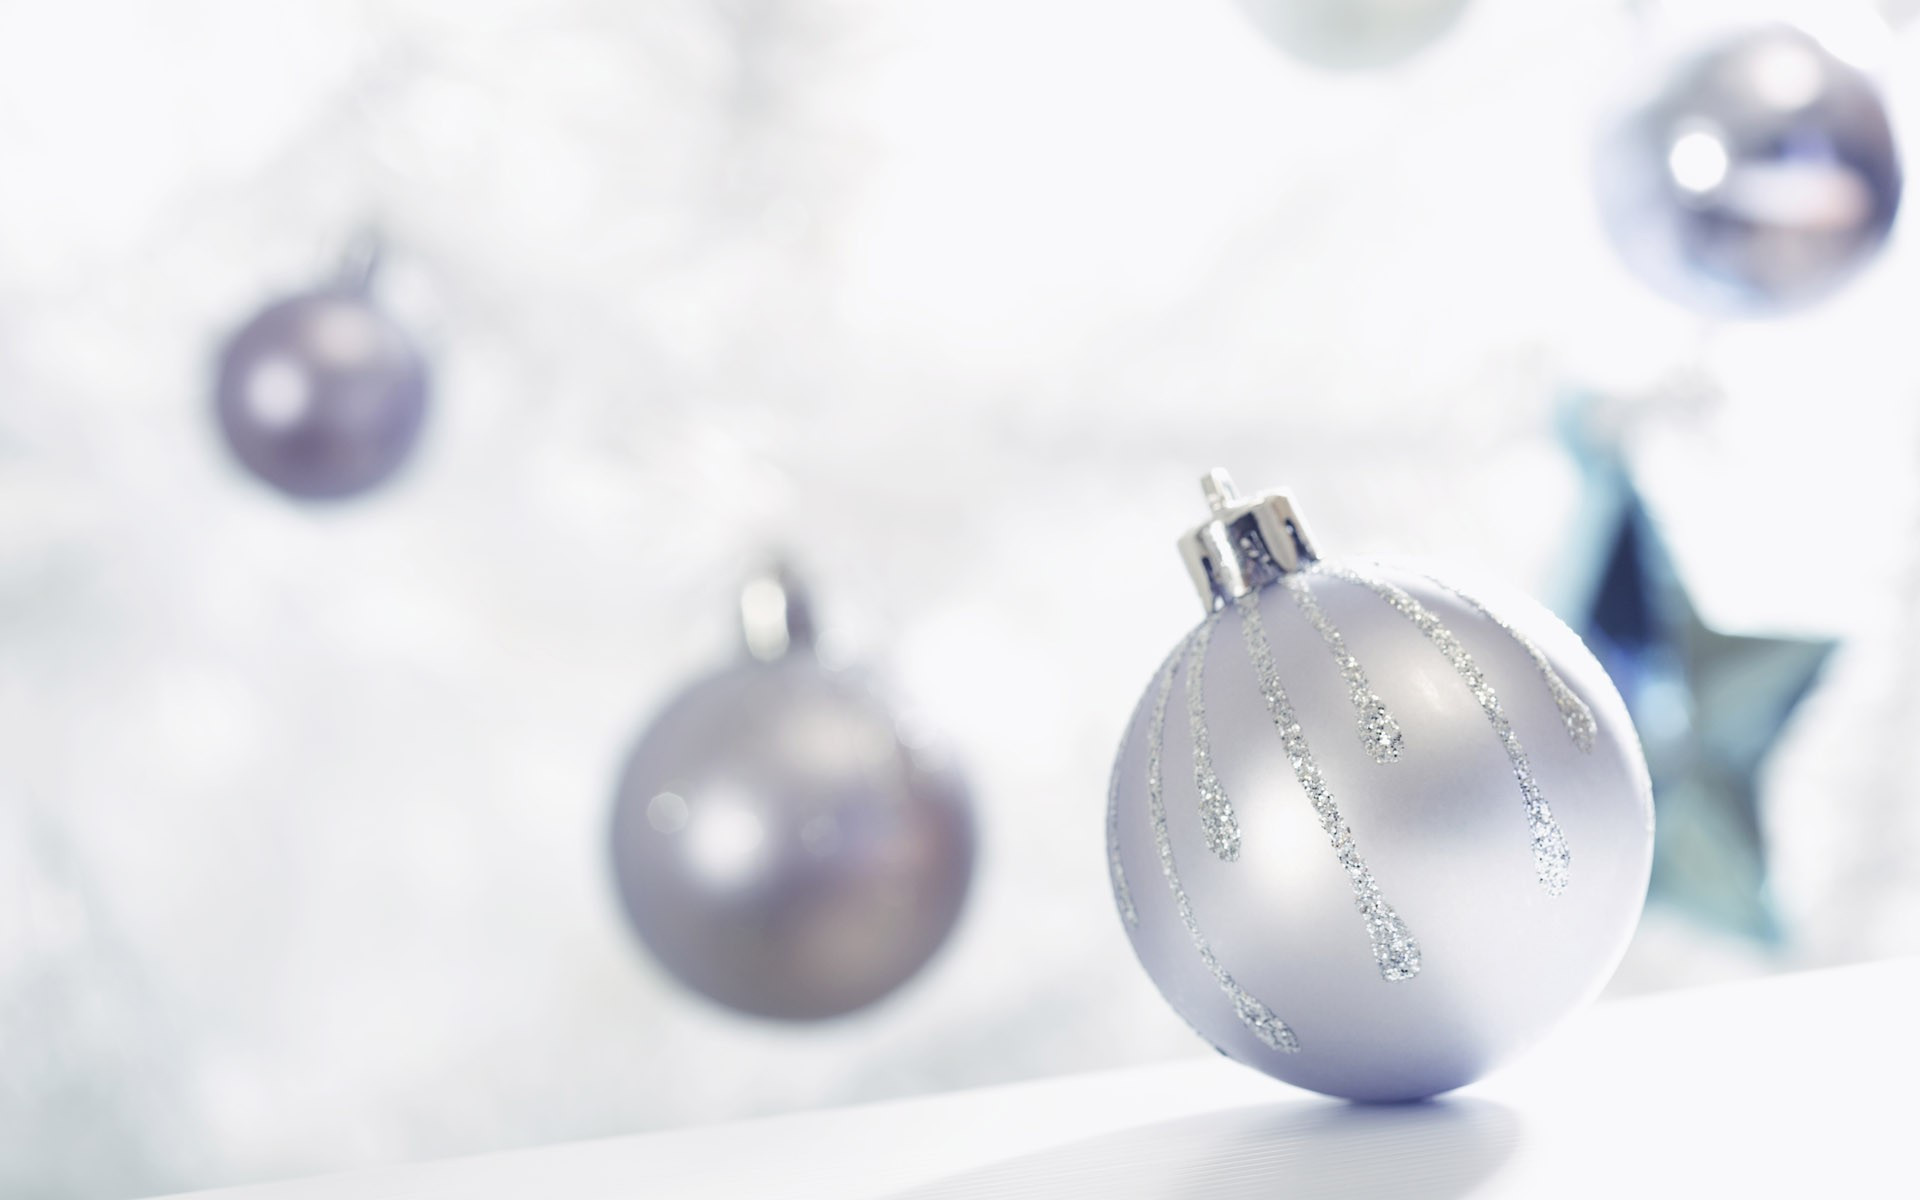 White Christmas ornaments Awesome White Christmas ornaments Wallpaper 8550 1920 X 1200 Of Attractive 44 Images White Christmas ornaments